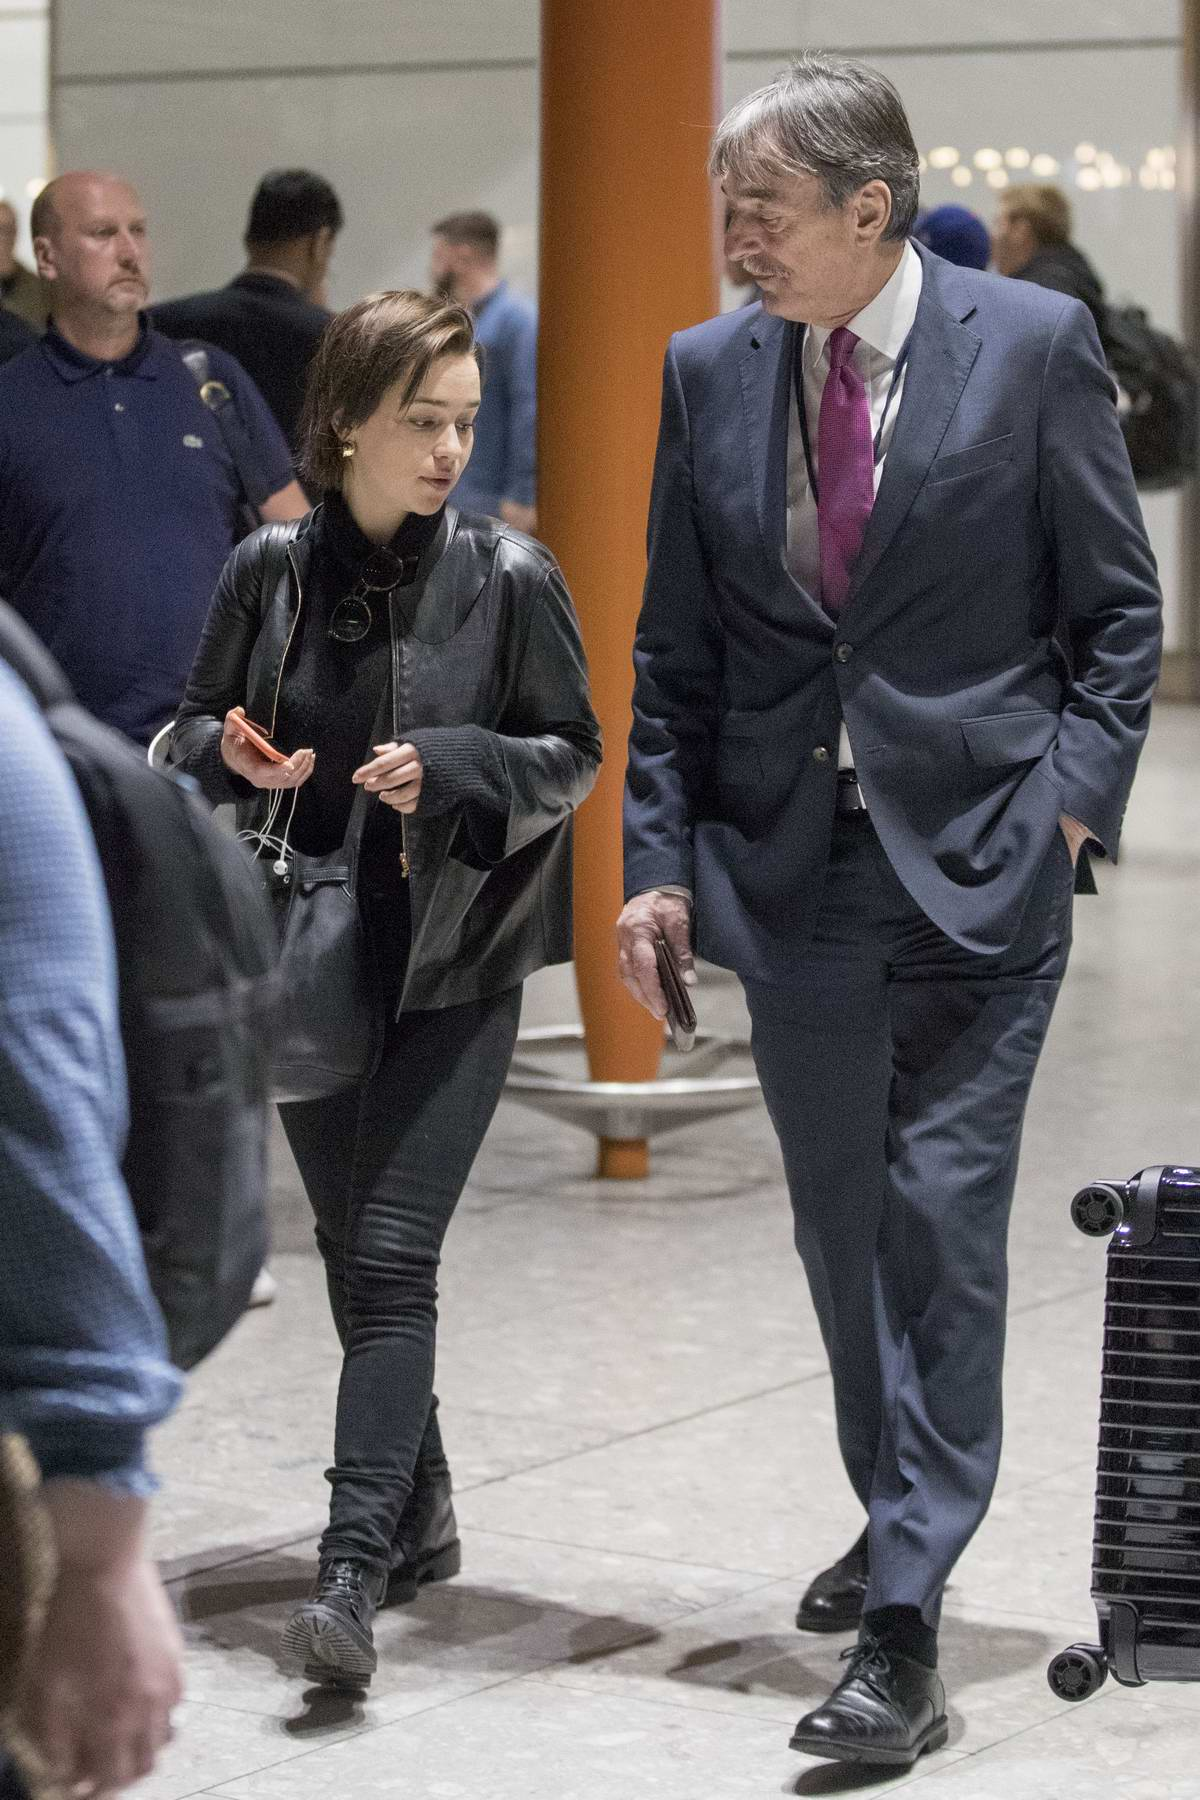 Emilia Clarke sports an all black look as she touches down at Heathrow Airport in London, UK